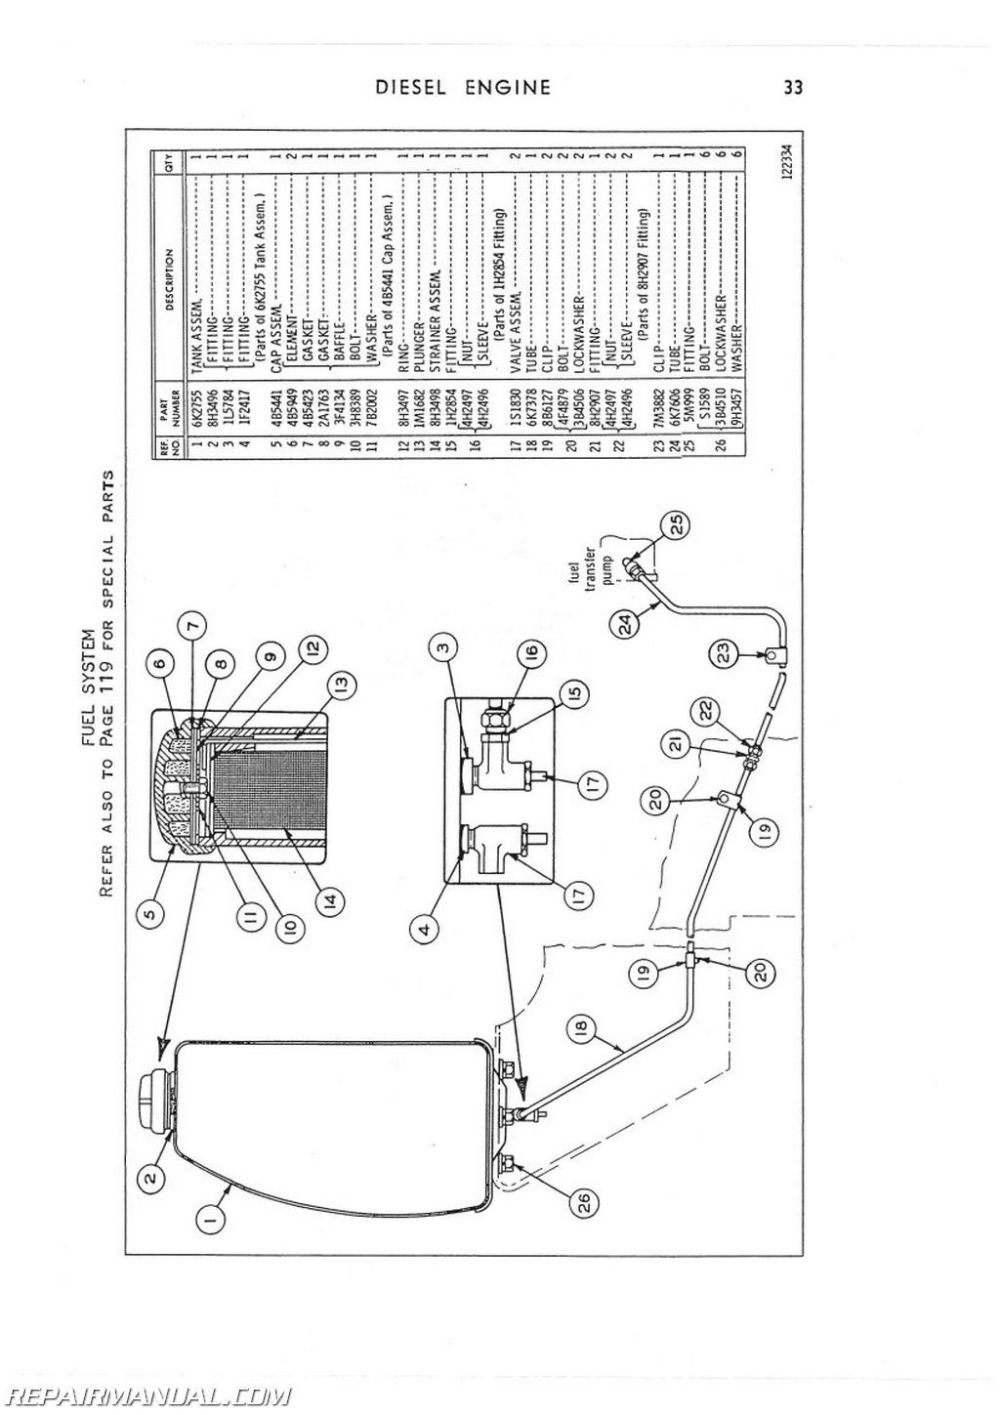 medium resolution of this 8 in downloadable cat diesel engine shop manual includes engine specifications cat manual asking price is any que our extensive products and